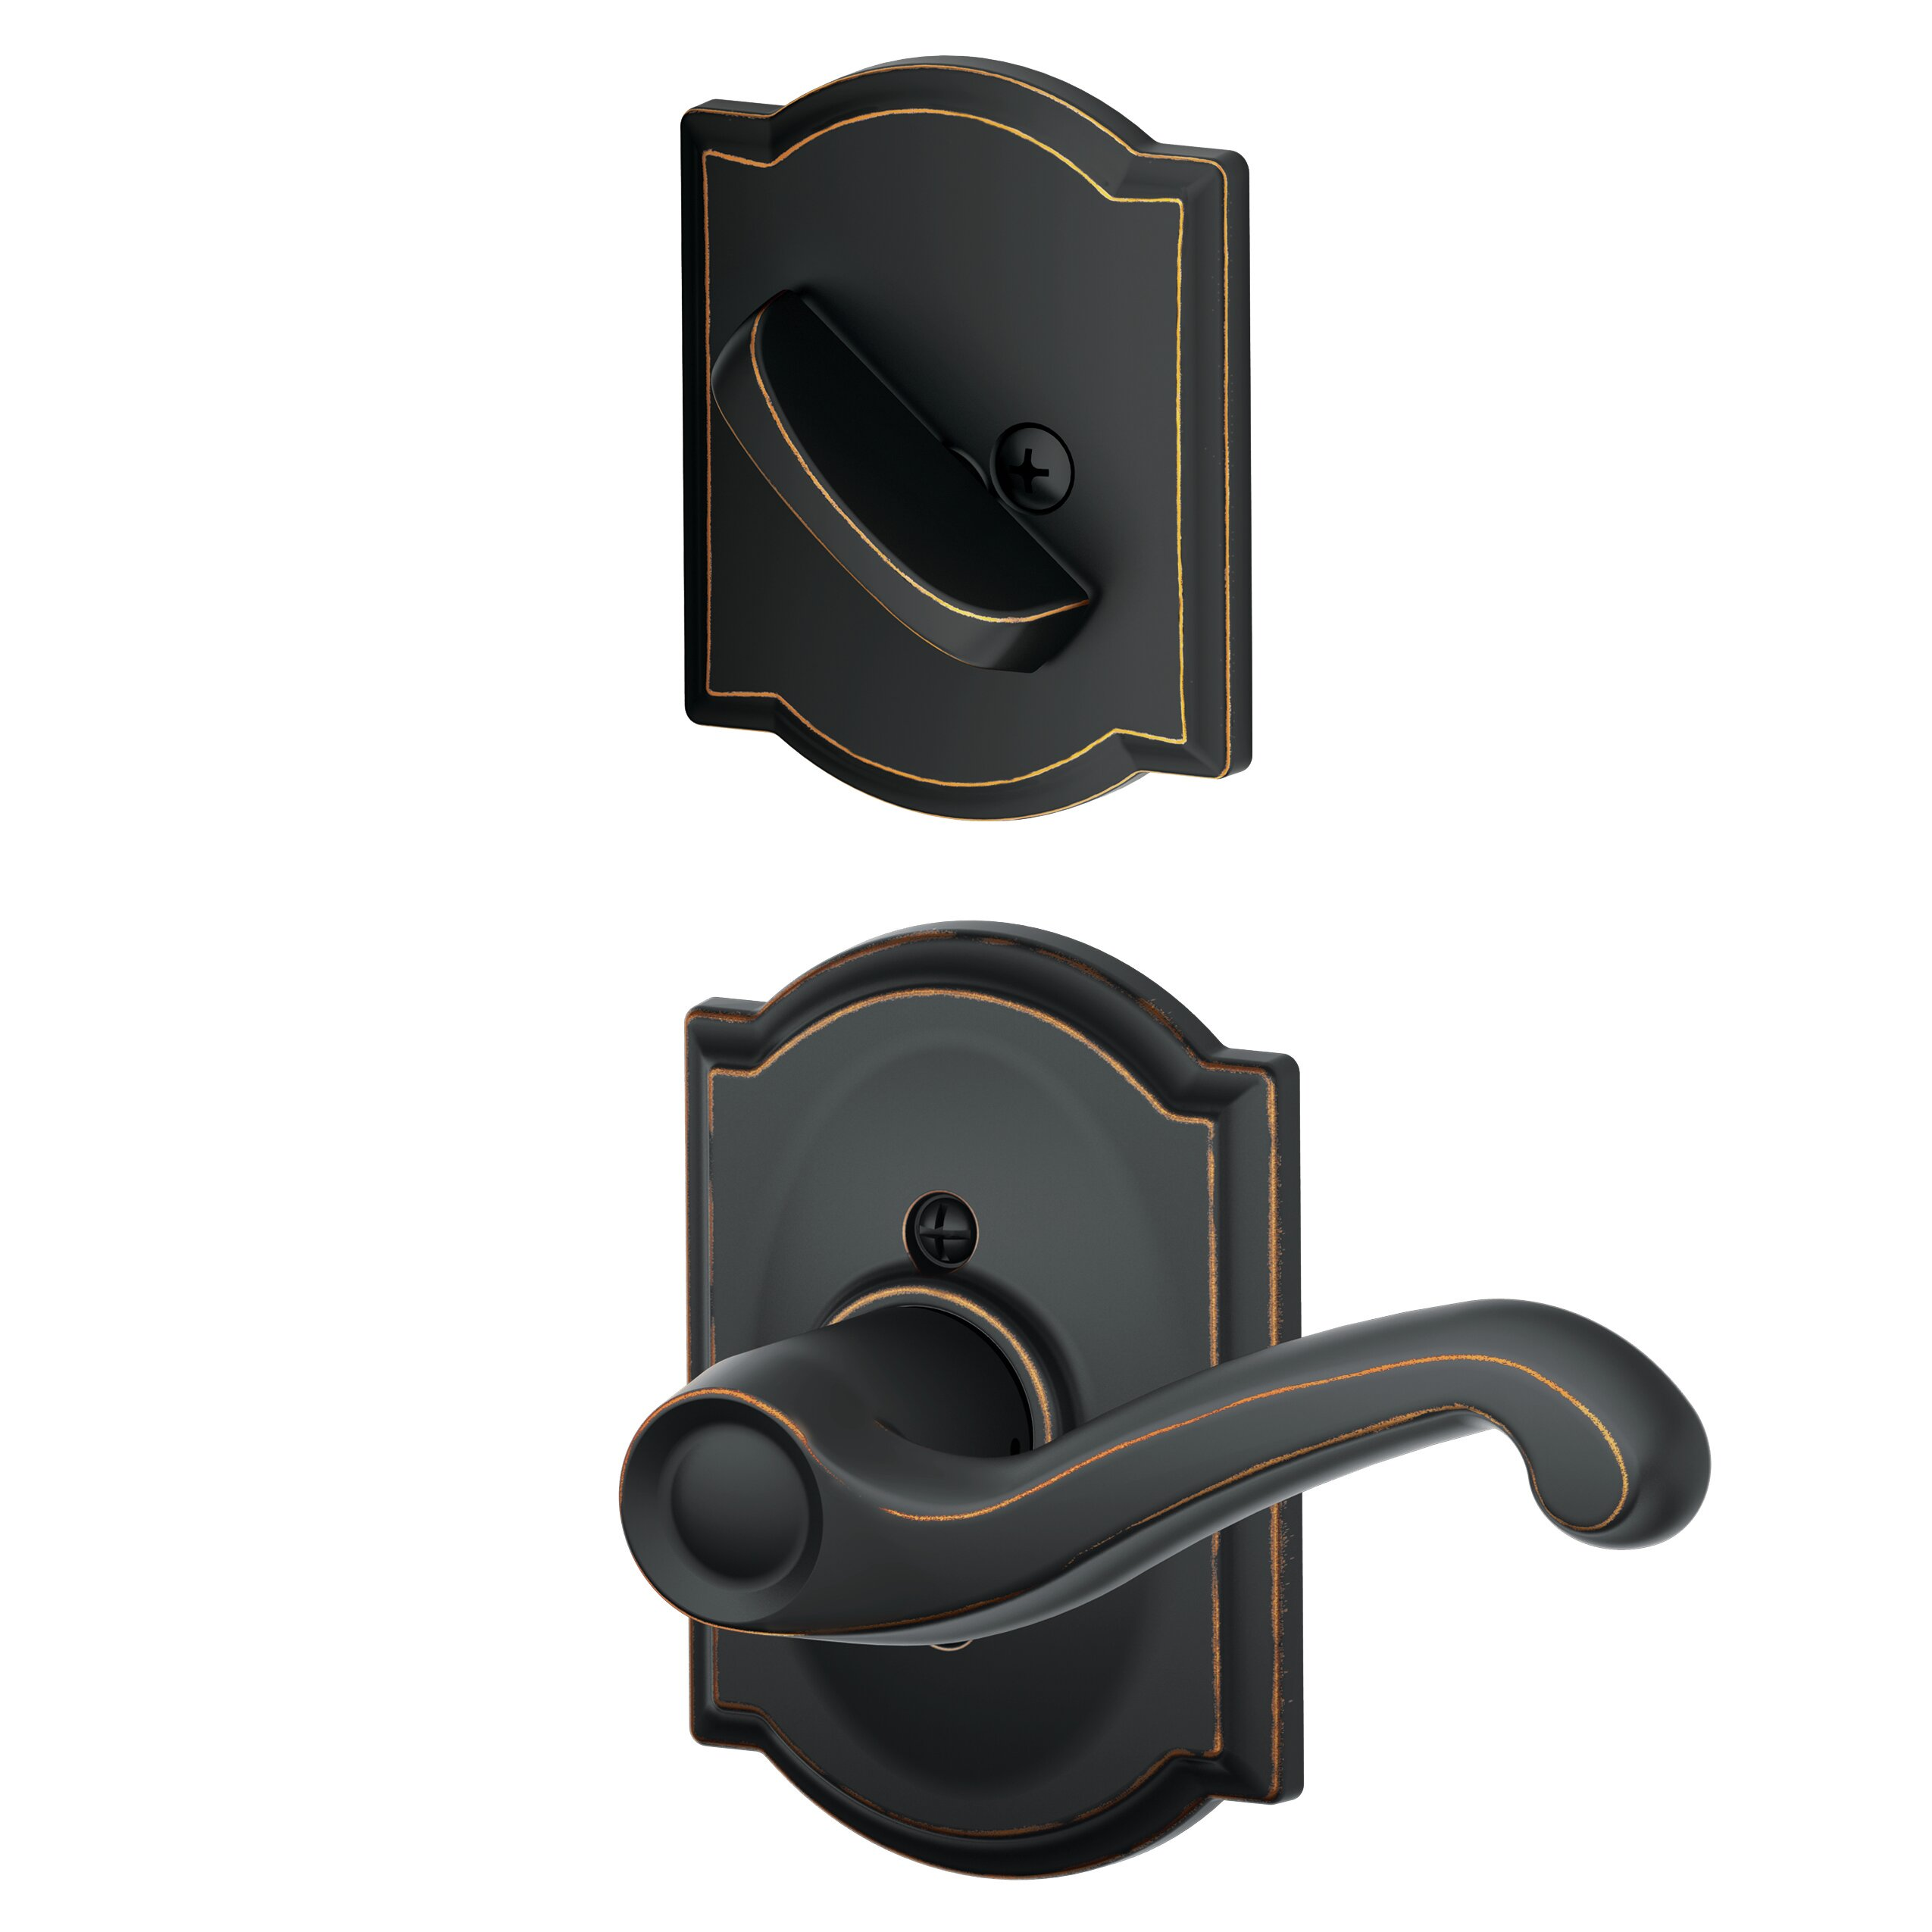 Schlage Inactive Interior Flair Lever Camelot Rosette Dummy Entry Set Exterior Portion Sold Separately Wayfair